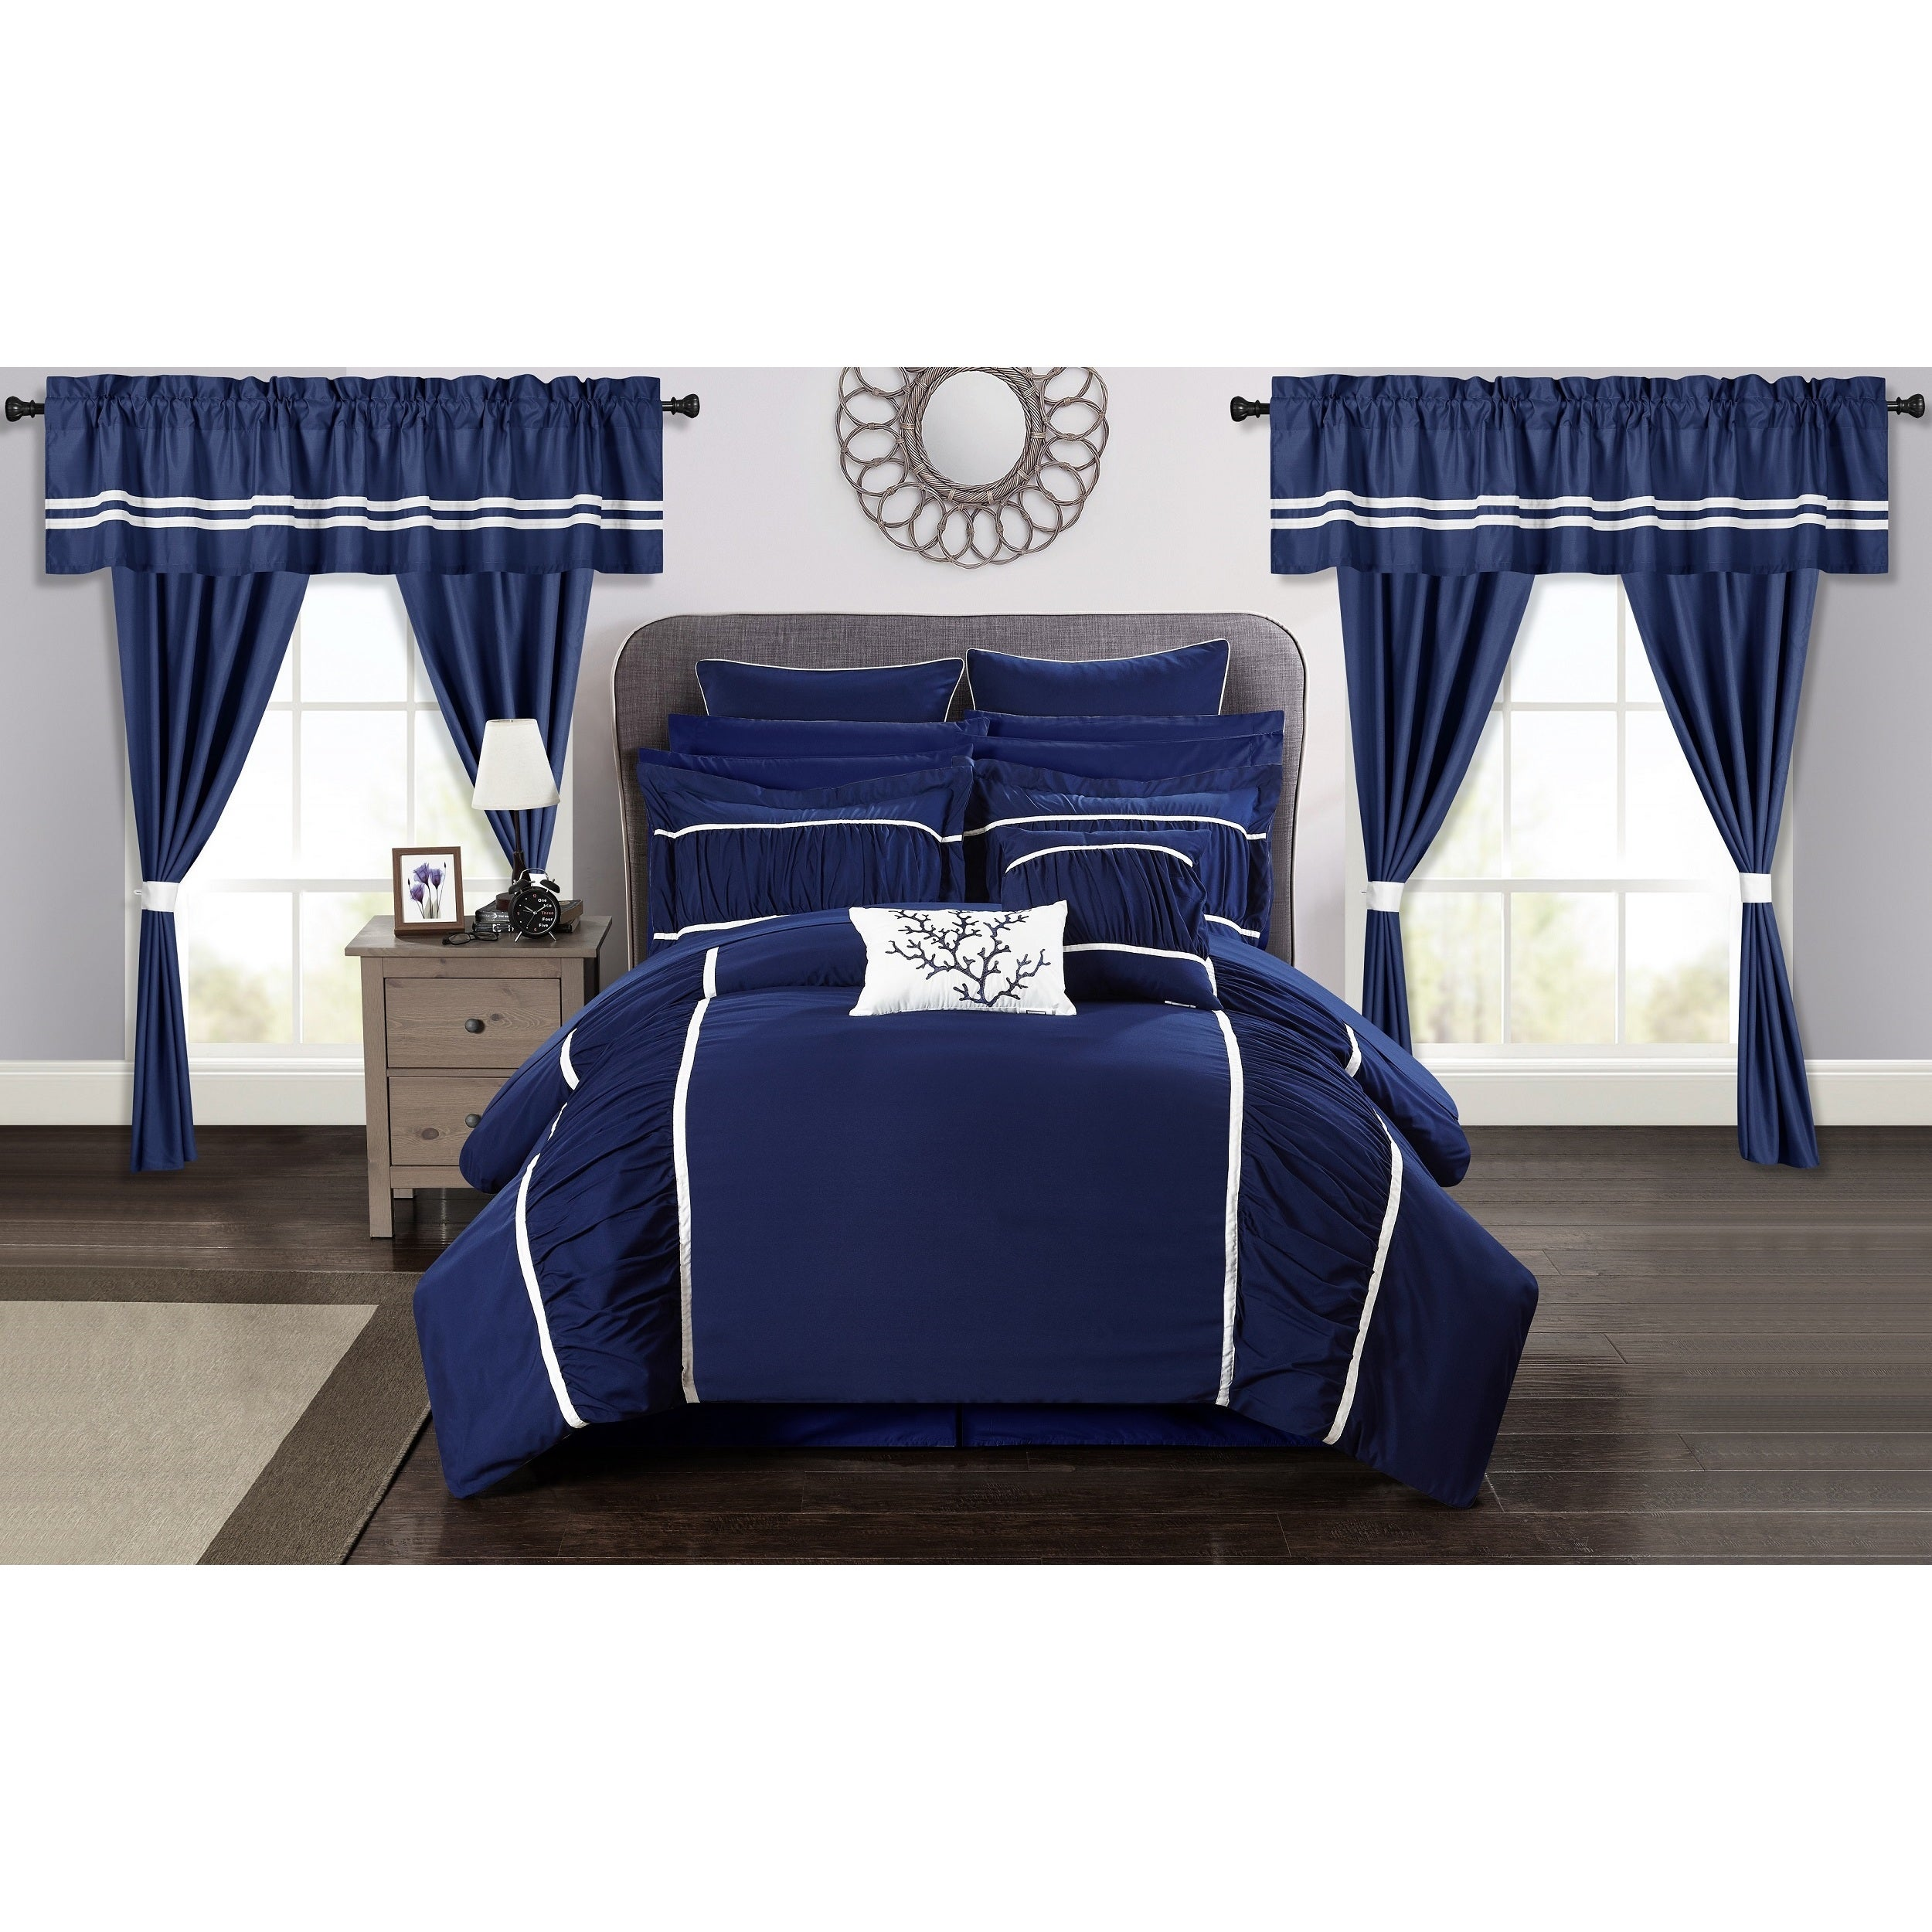 Chic Home 24 Piece Auburn King Bed In A Bag Comforter Set